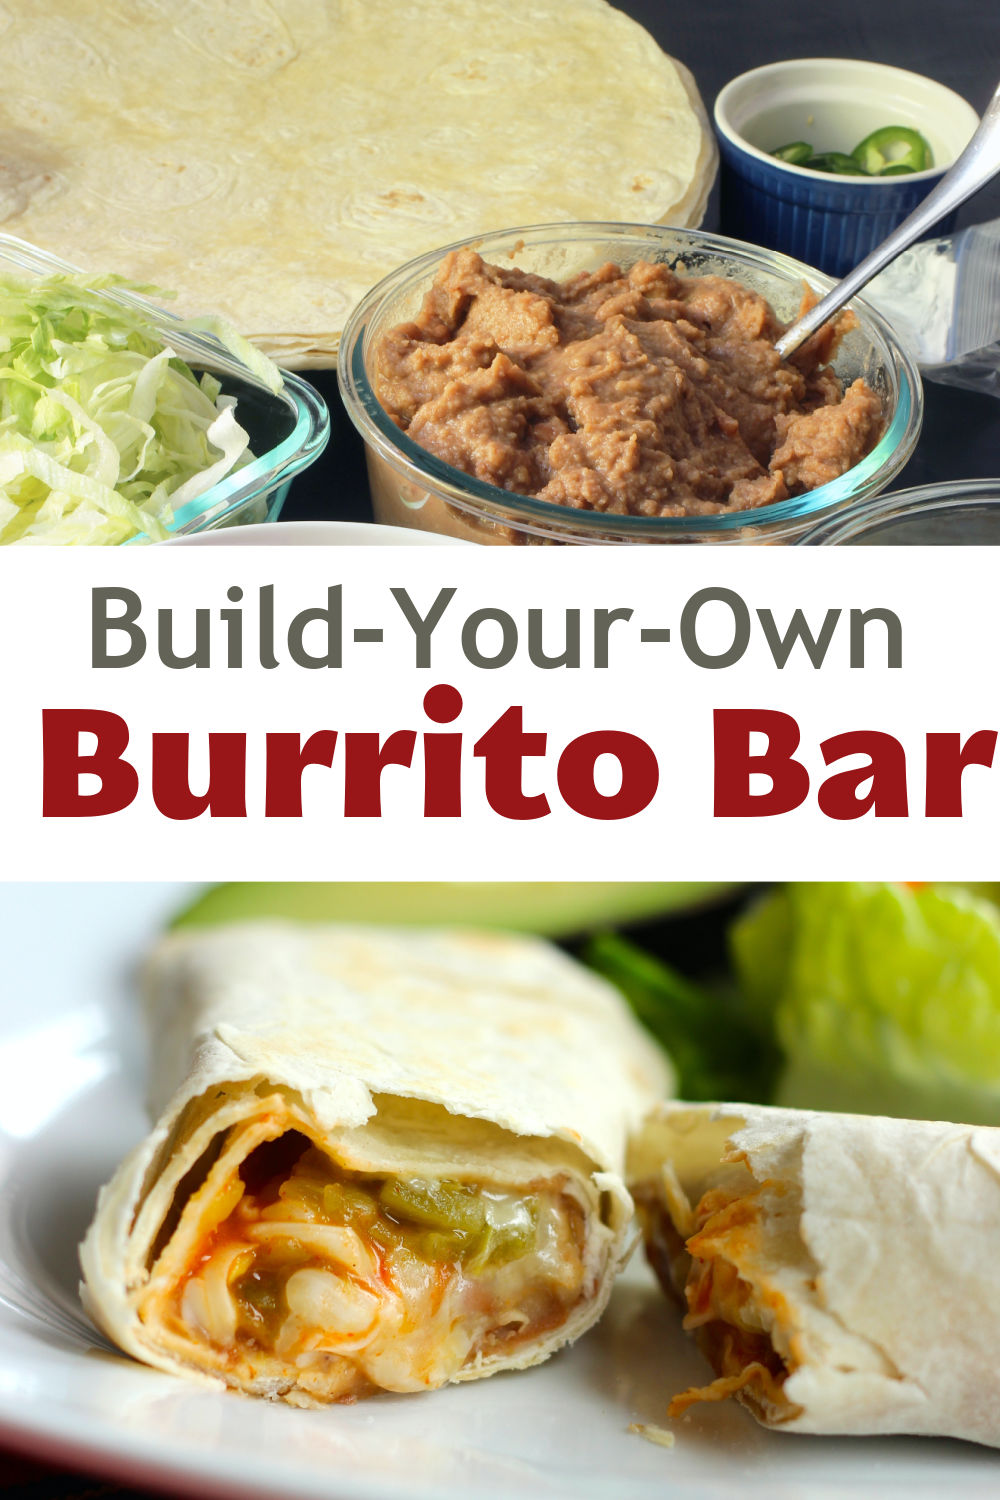 pinnable image of burrito bar